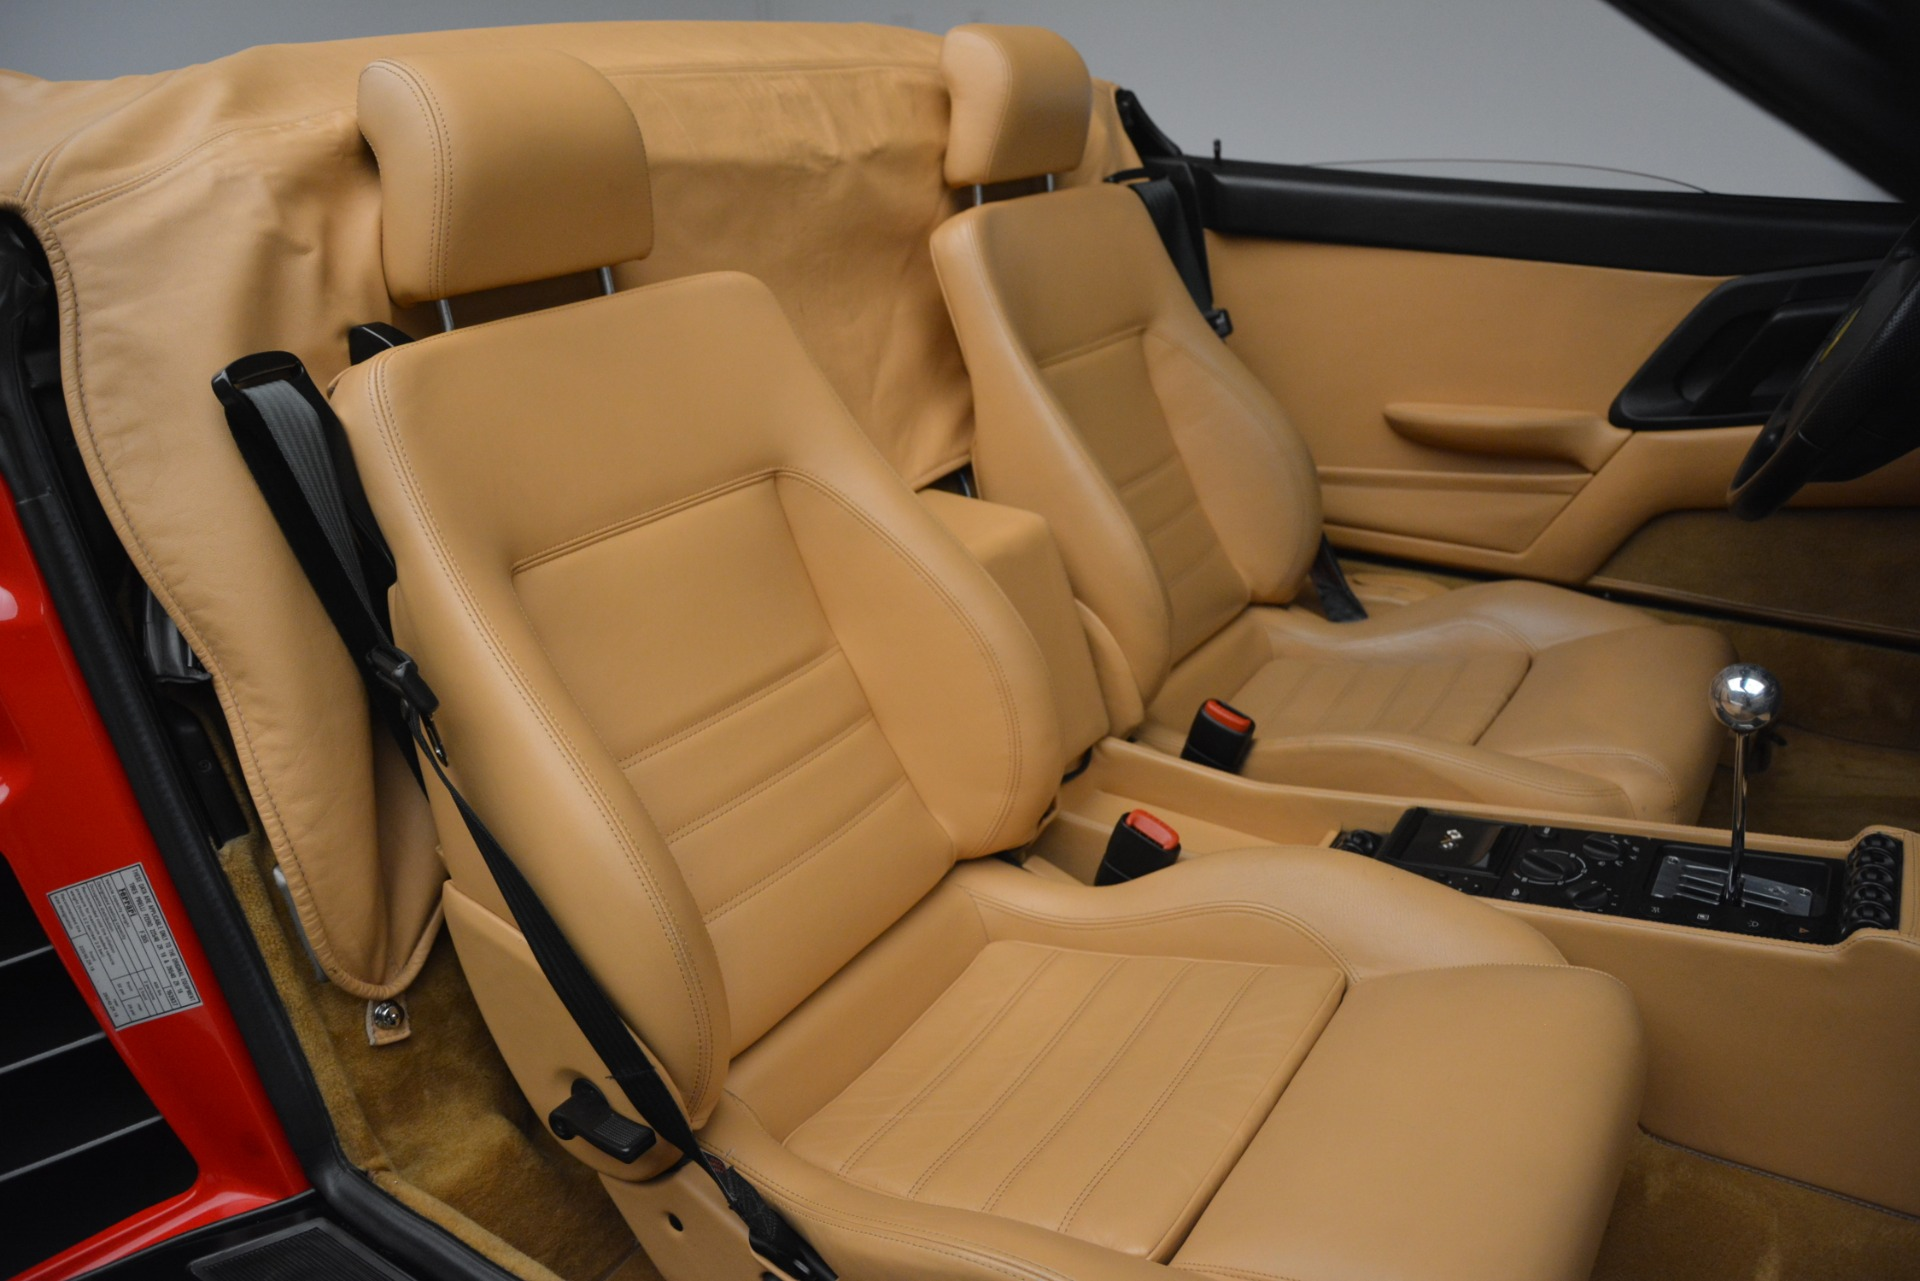 Used 1997 Ferrari 355 Spider 6-Speed Manual For Sale In Greenwich, CT 2735_p34